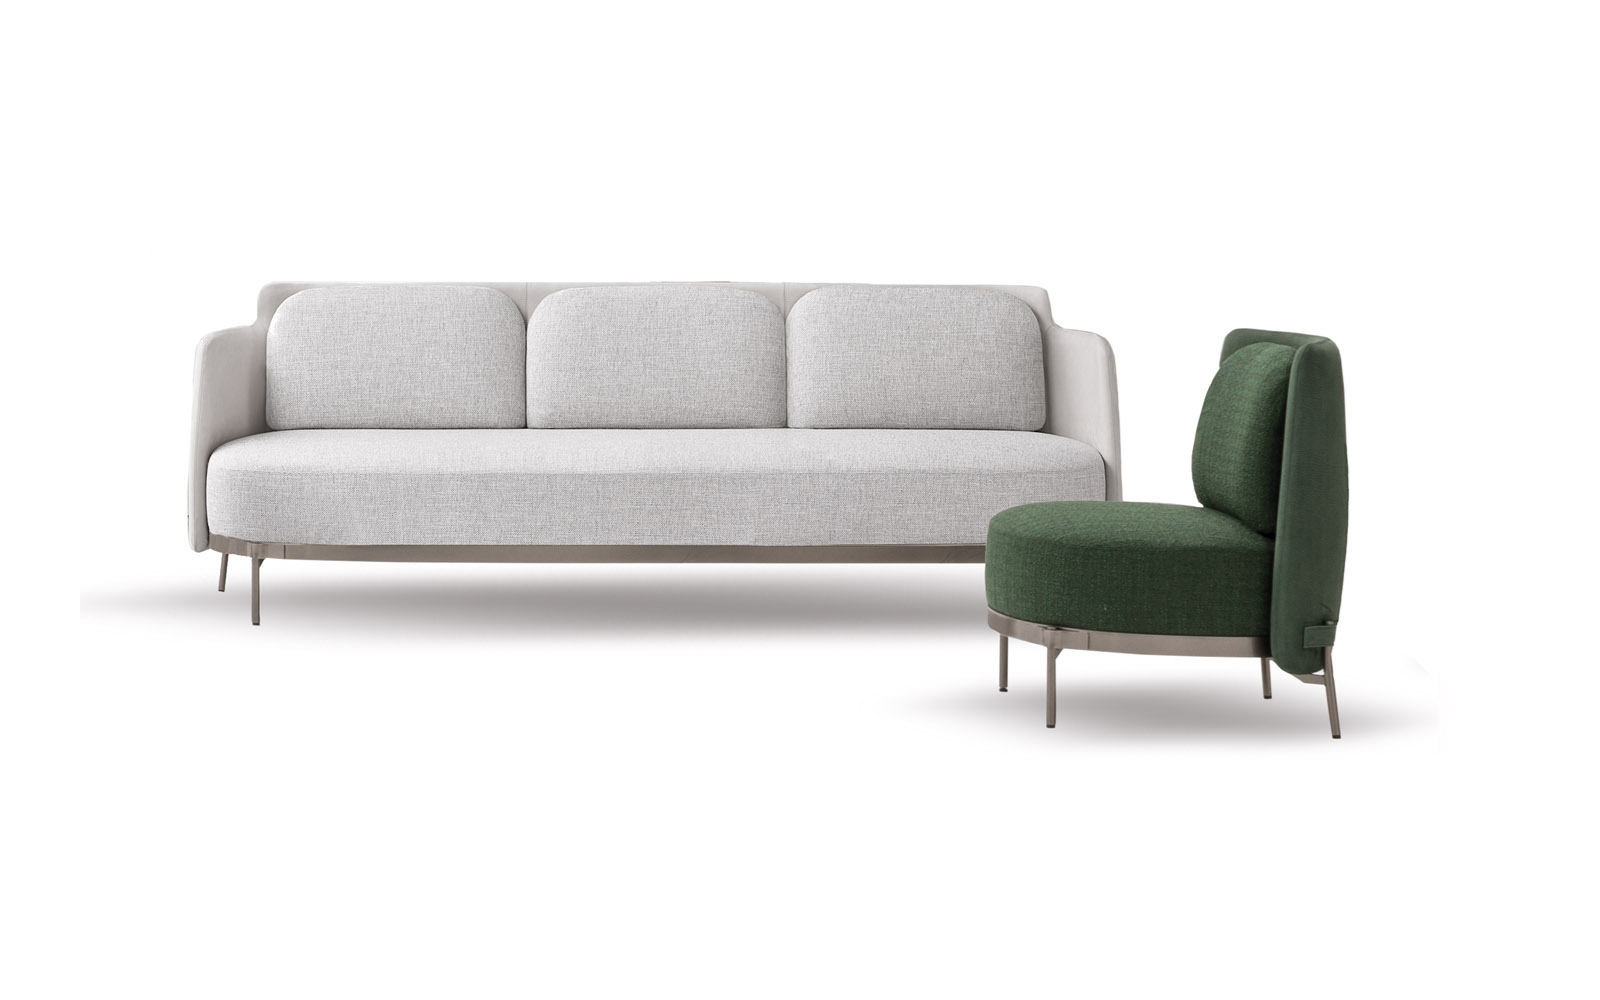 Full Size of Minotti Freeman Sofa Uk Alexander Size Bed Hamilton For Sale Sleeper Andersen Dimensions Weiches Copperfield Big Kaufen Cassina Sitzhöhe 55 Cm Grau Weiß U Sofa Minotti Sofa